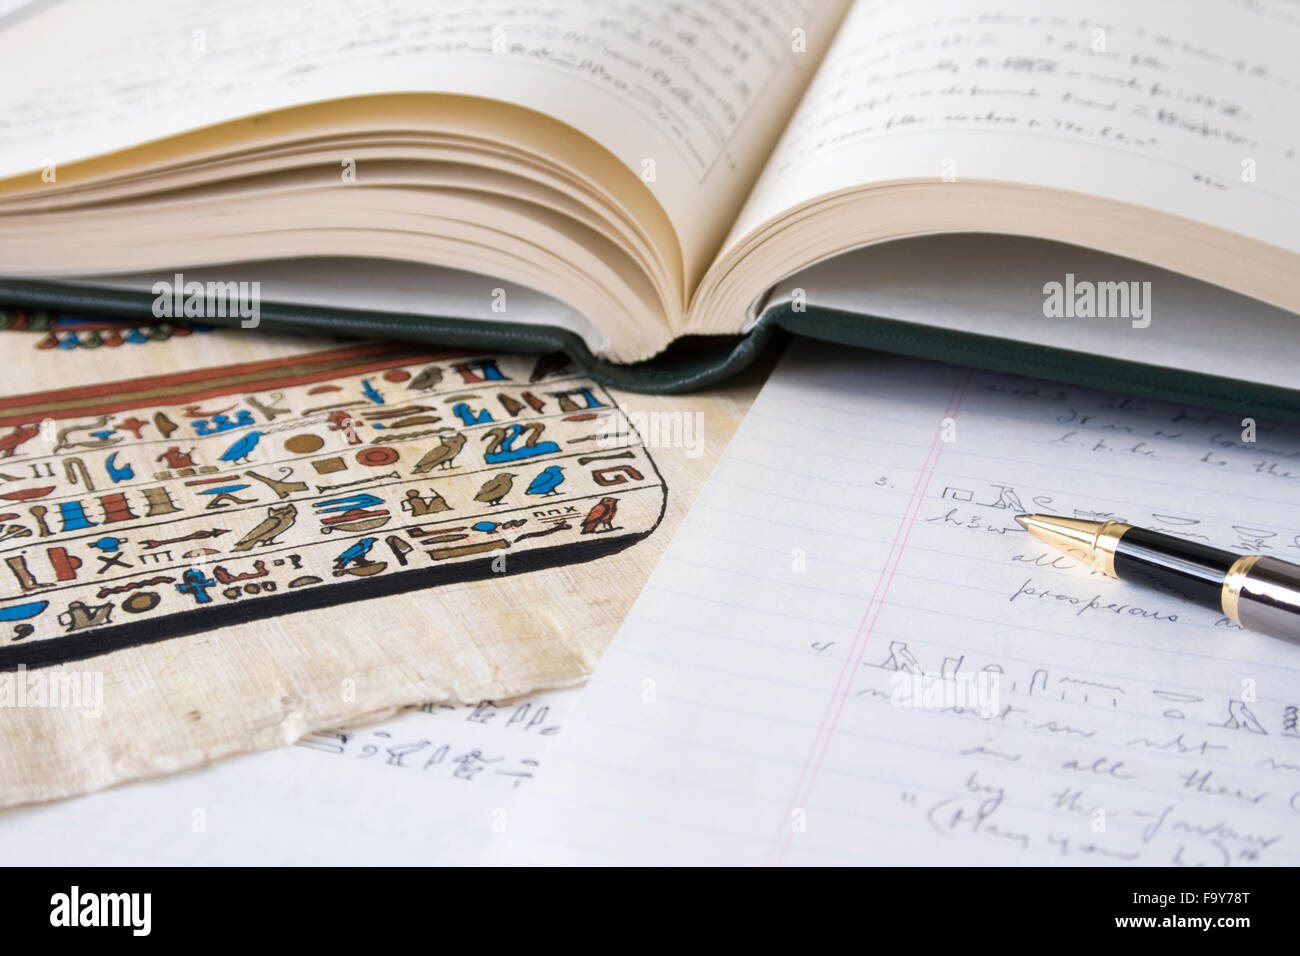 Book of Egyptian Hieroglyphs with pen and translation - Stock Image